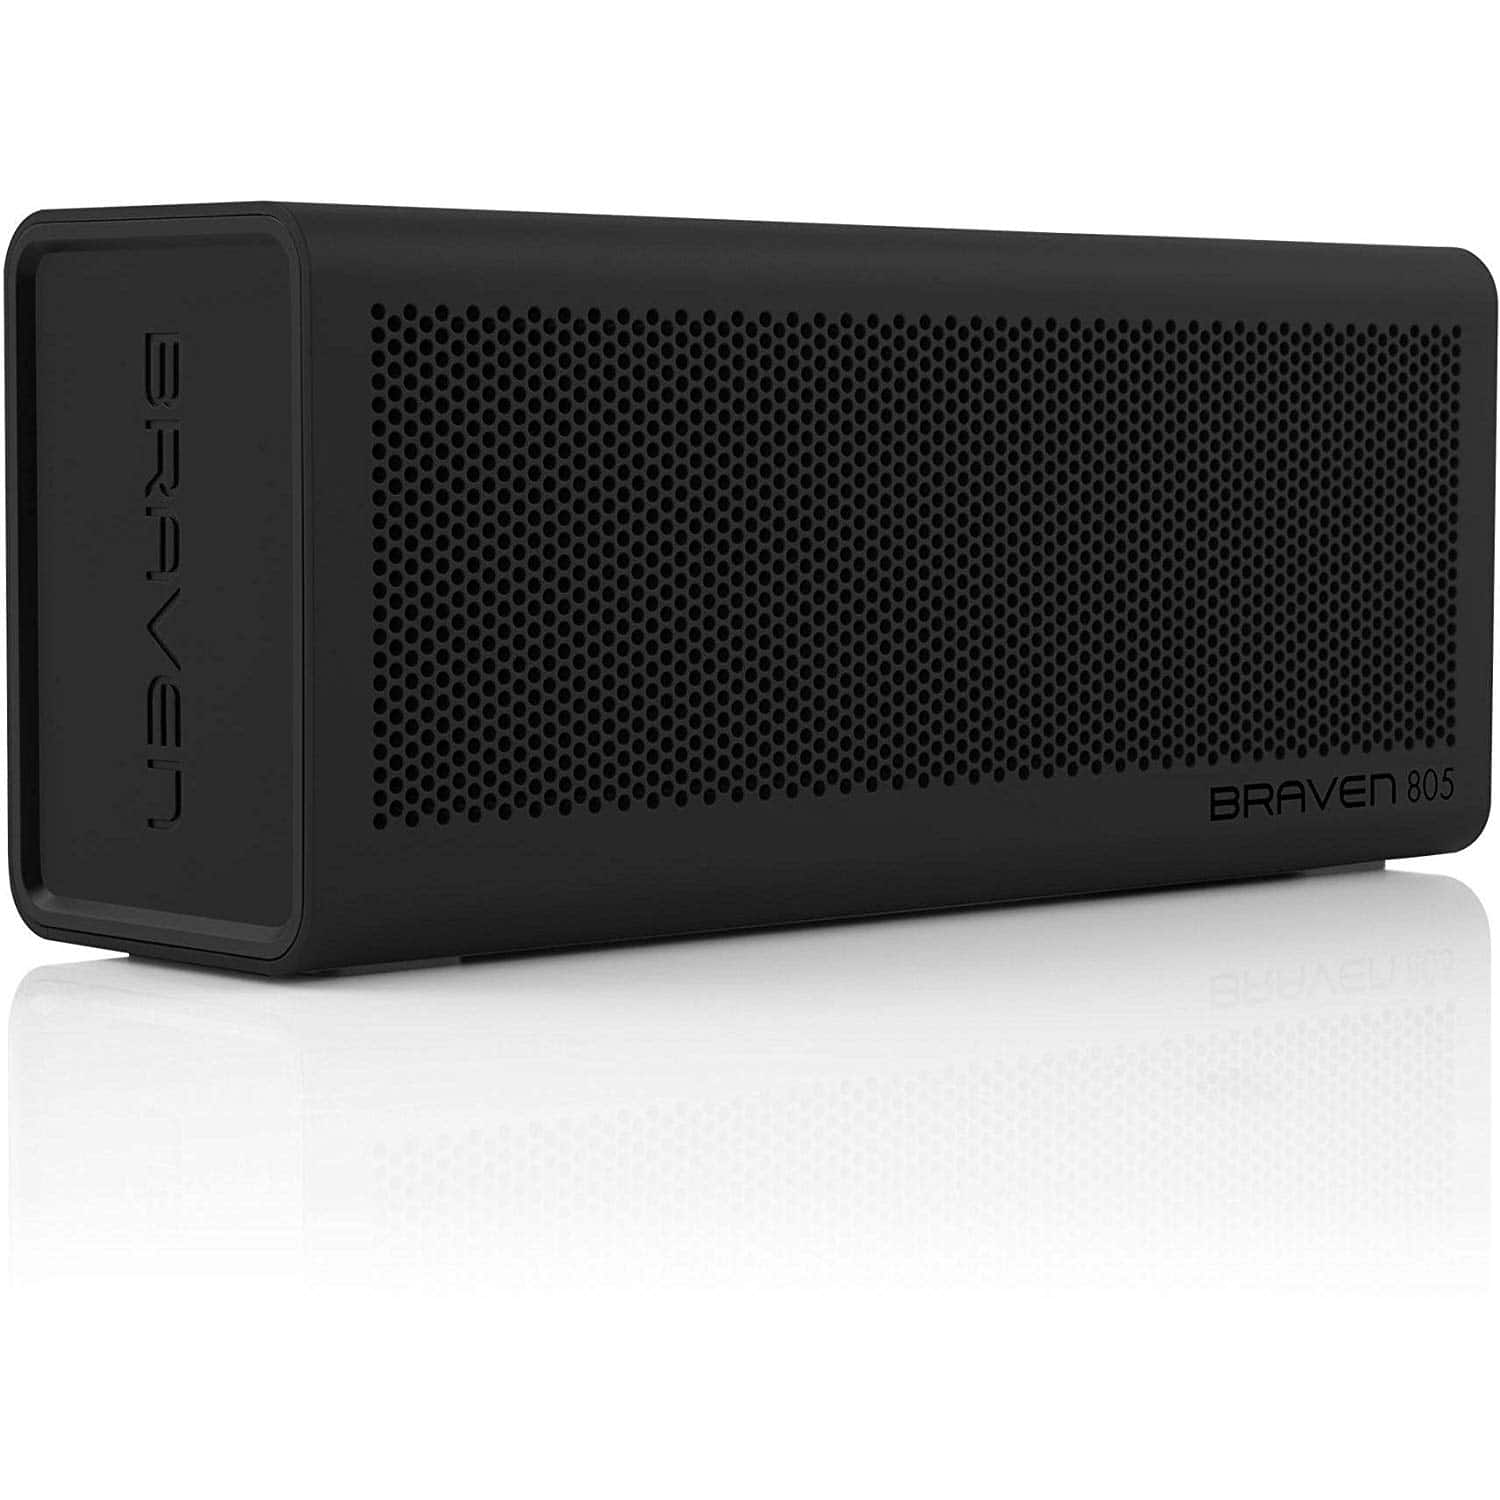 Braven 805 Portable Wireless Bluetooth Speaker with Built-In Power Bank Charger Black - $39.95 + Free Shipping